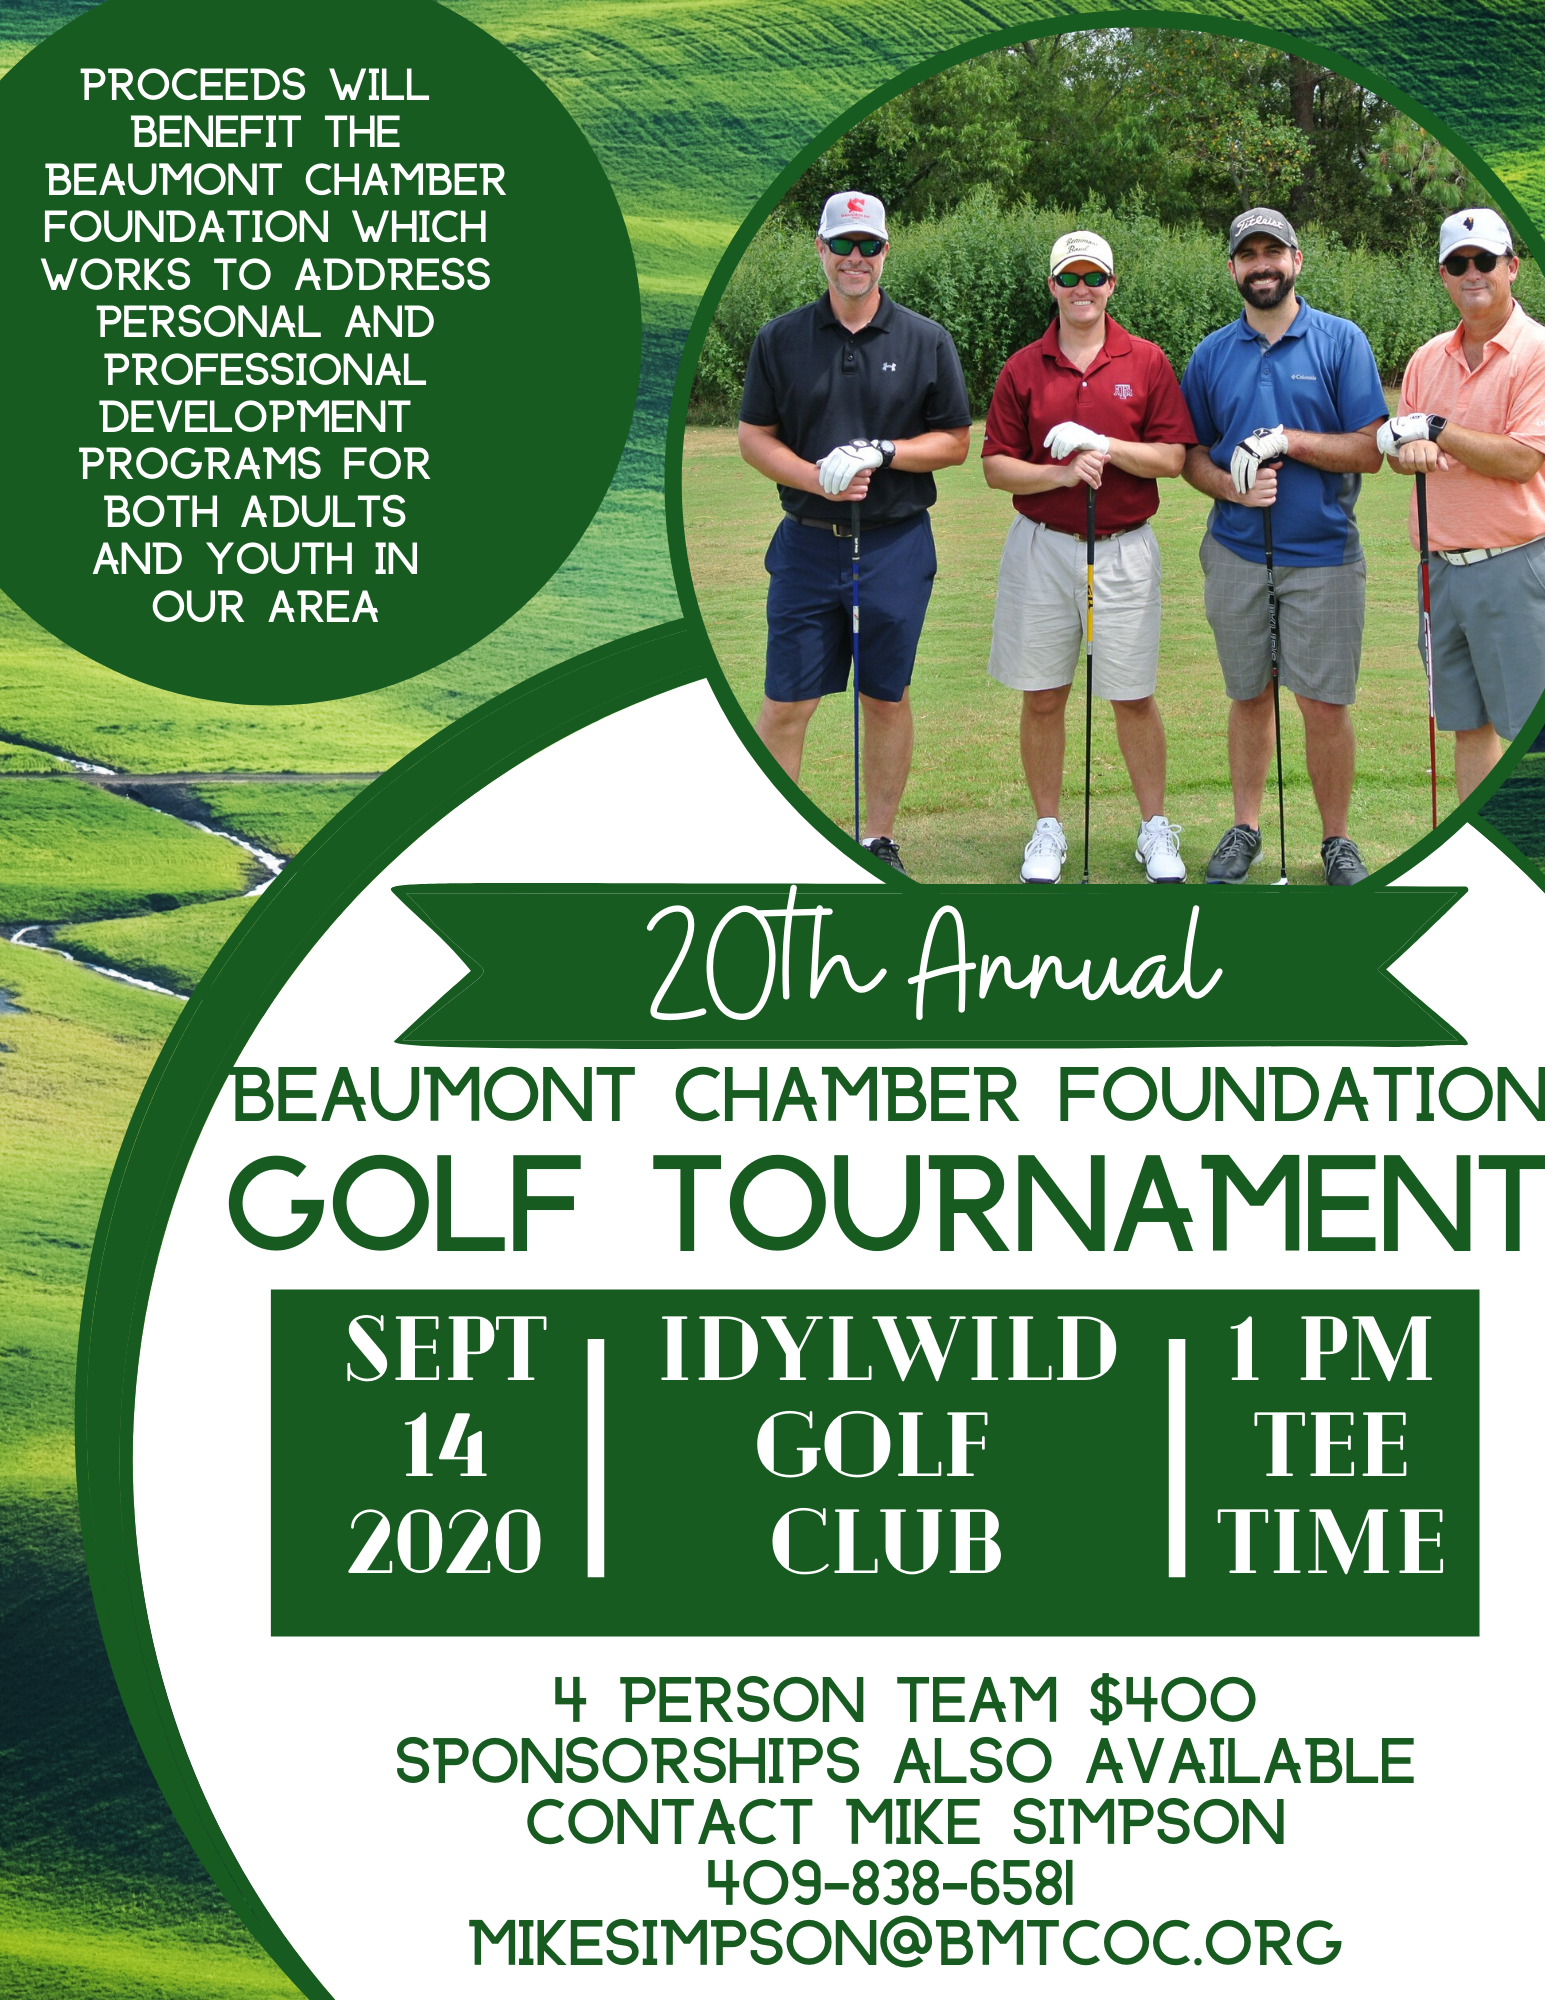 Beaumont-Chamber-Foundation-Golf-Tournament.png